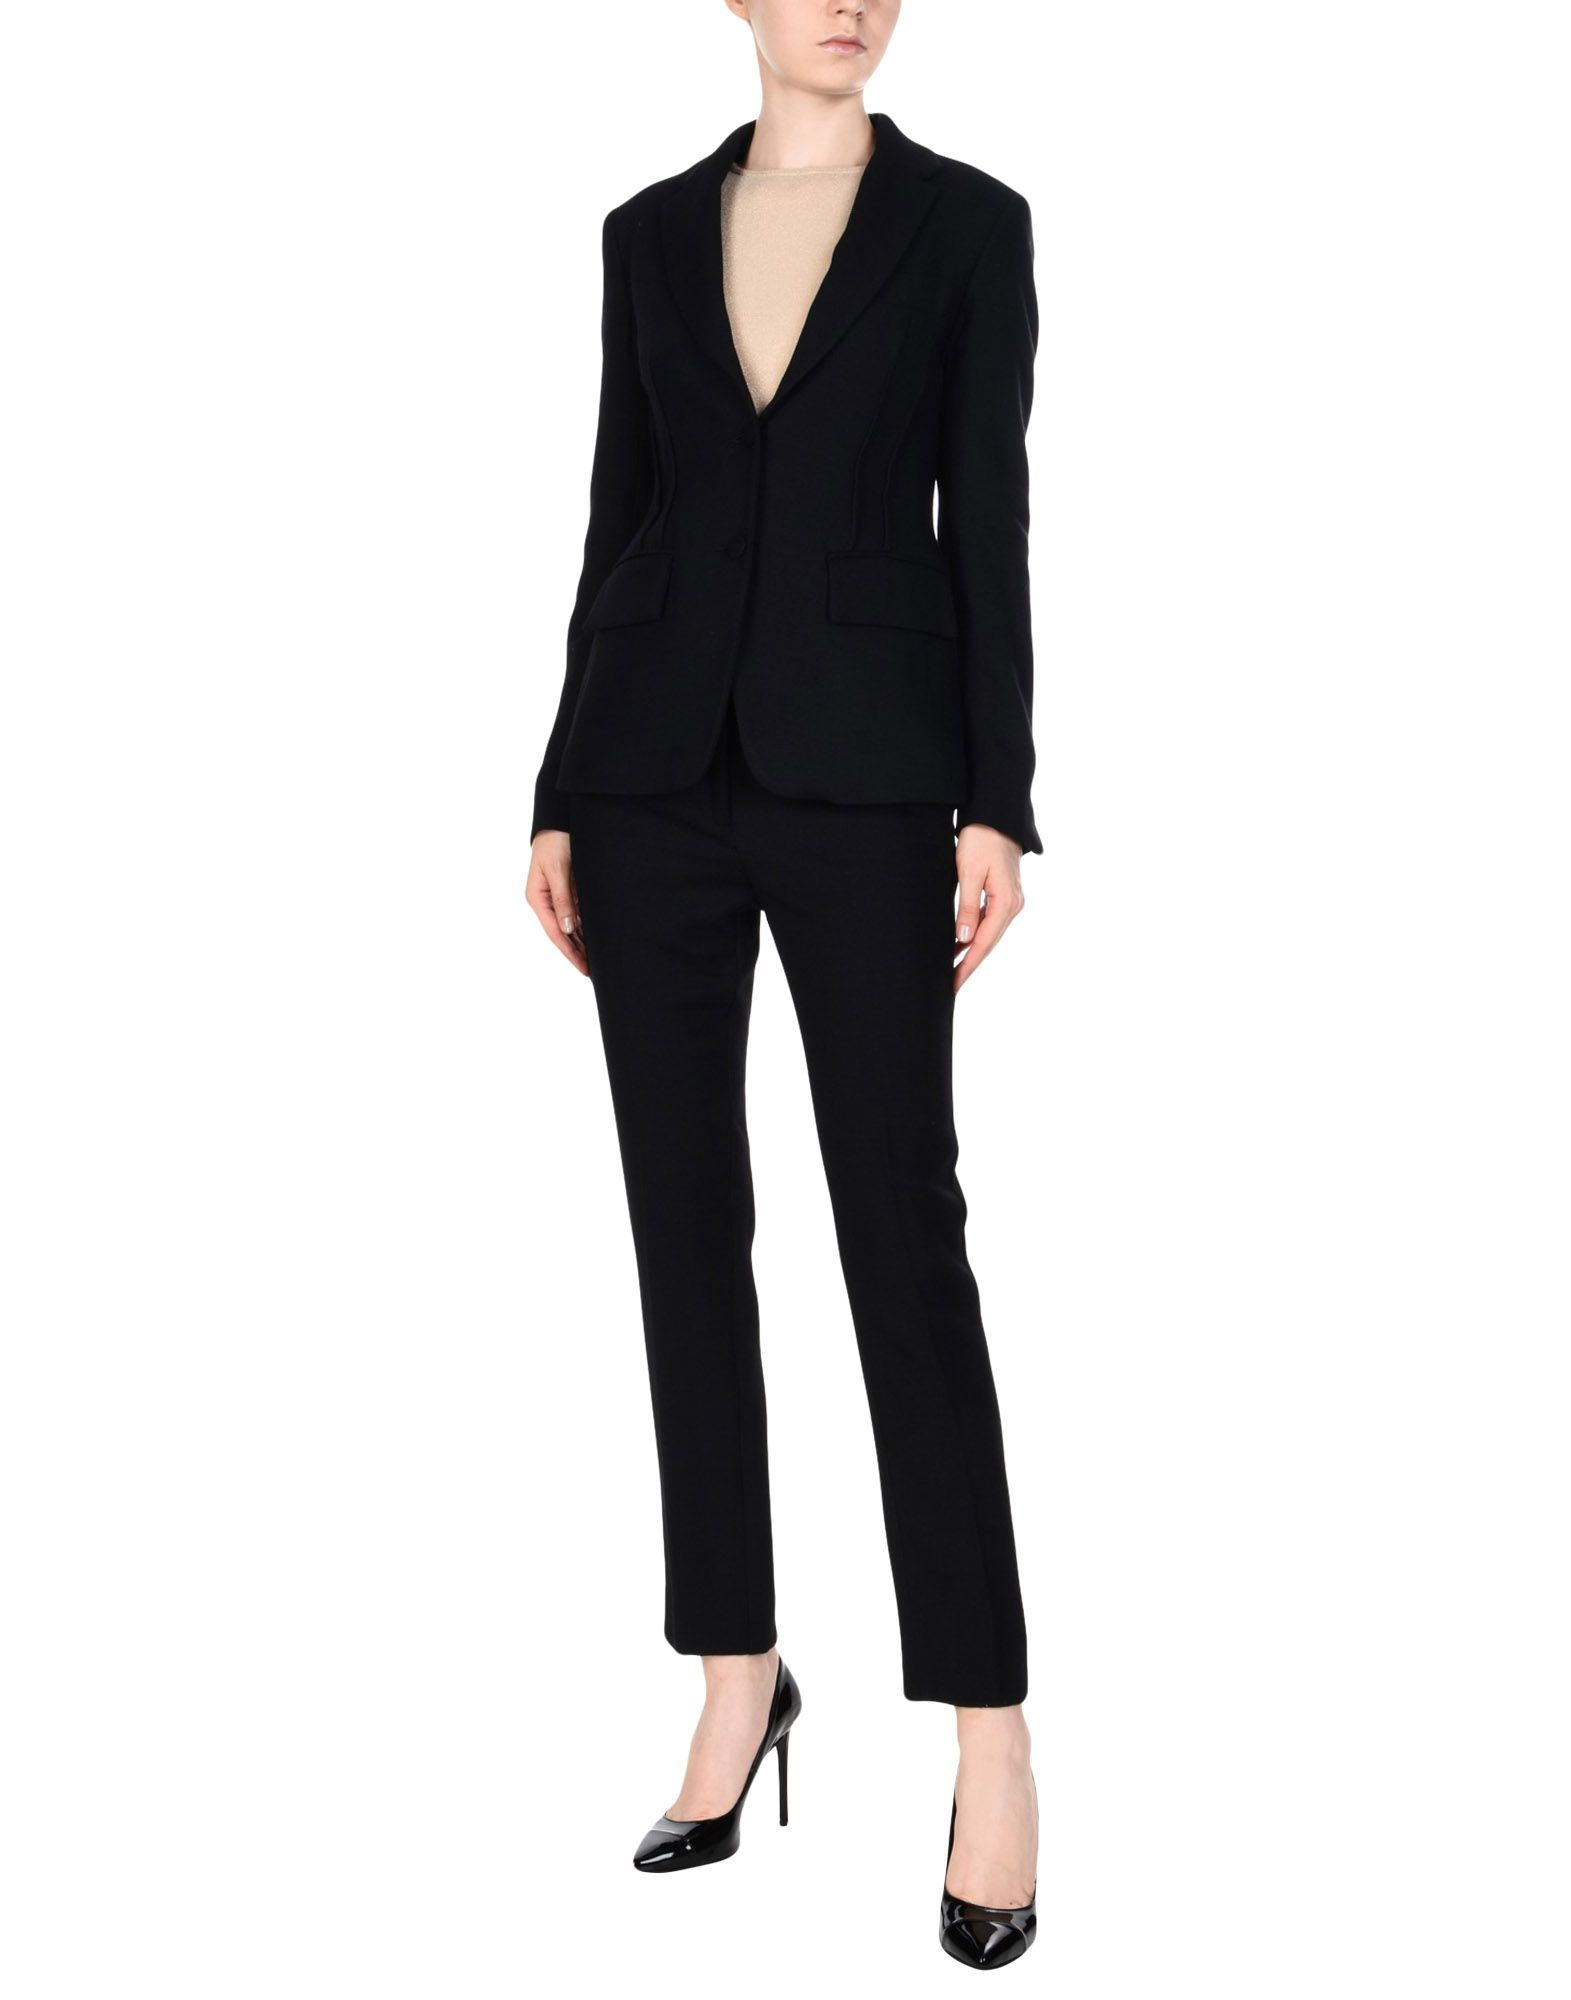 Mauro Grifoni Black Single Breasted Suit